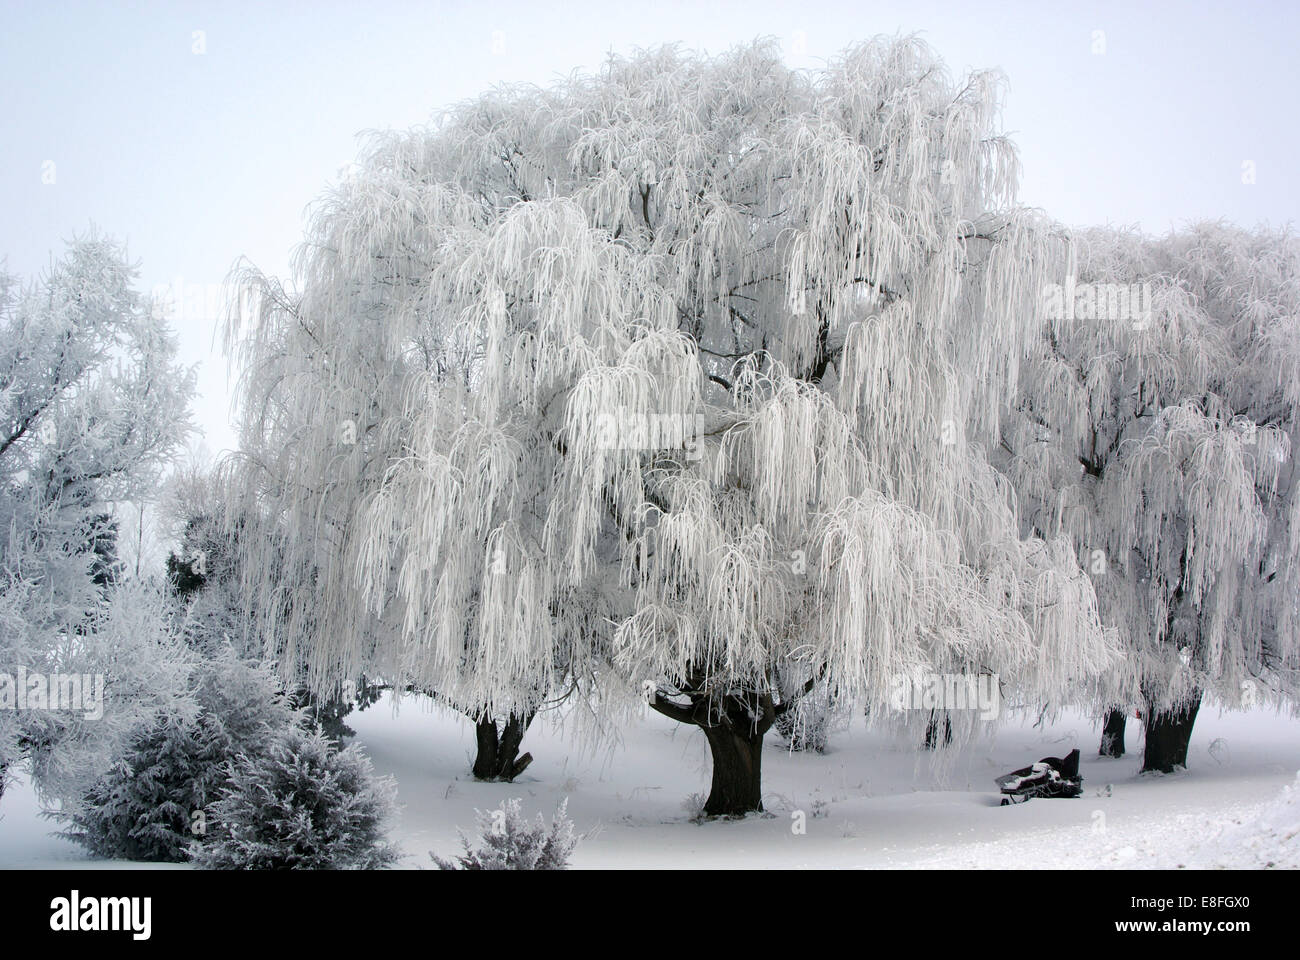 USA, Minnesota, Frosted willows - Stock Image